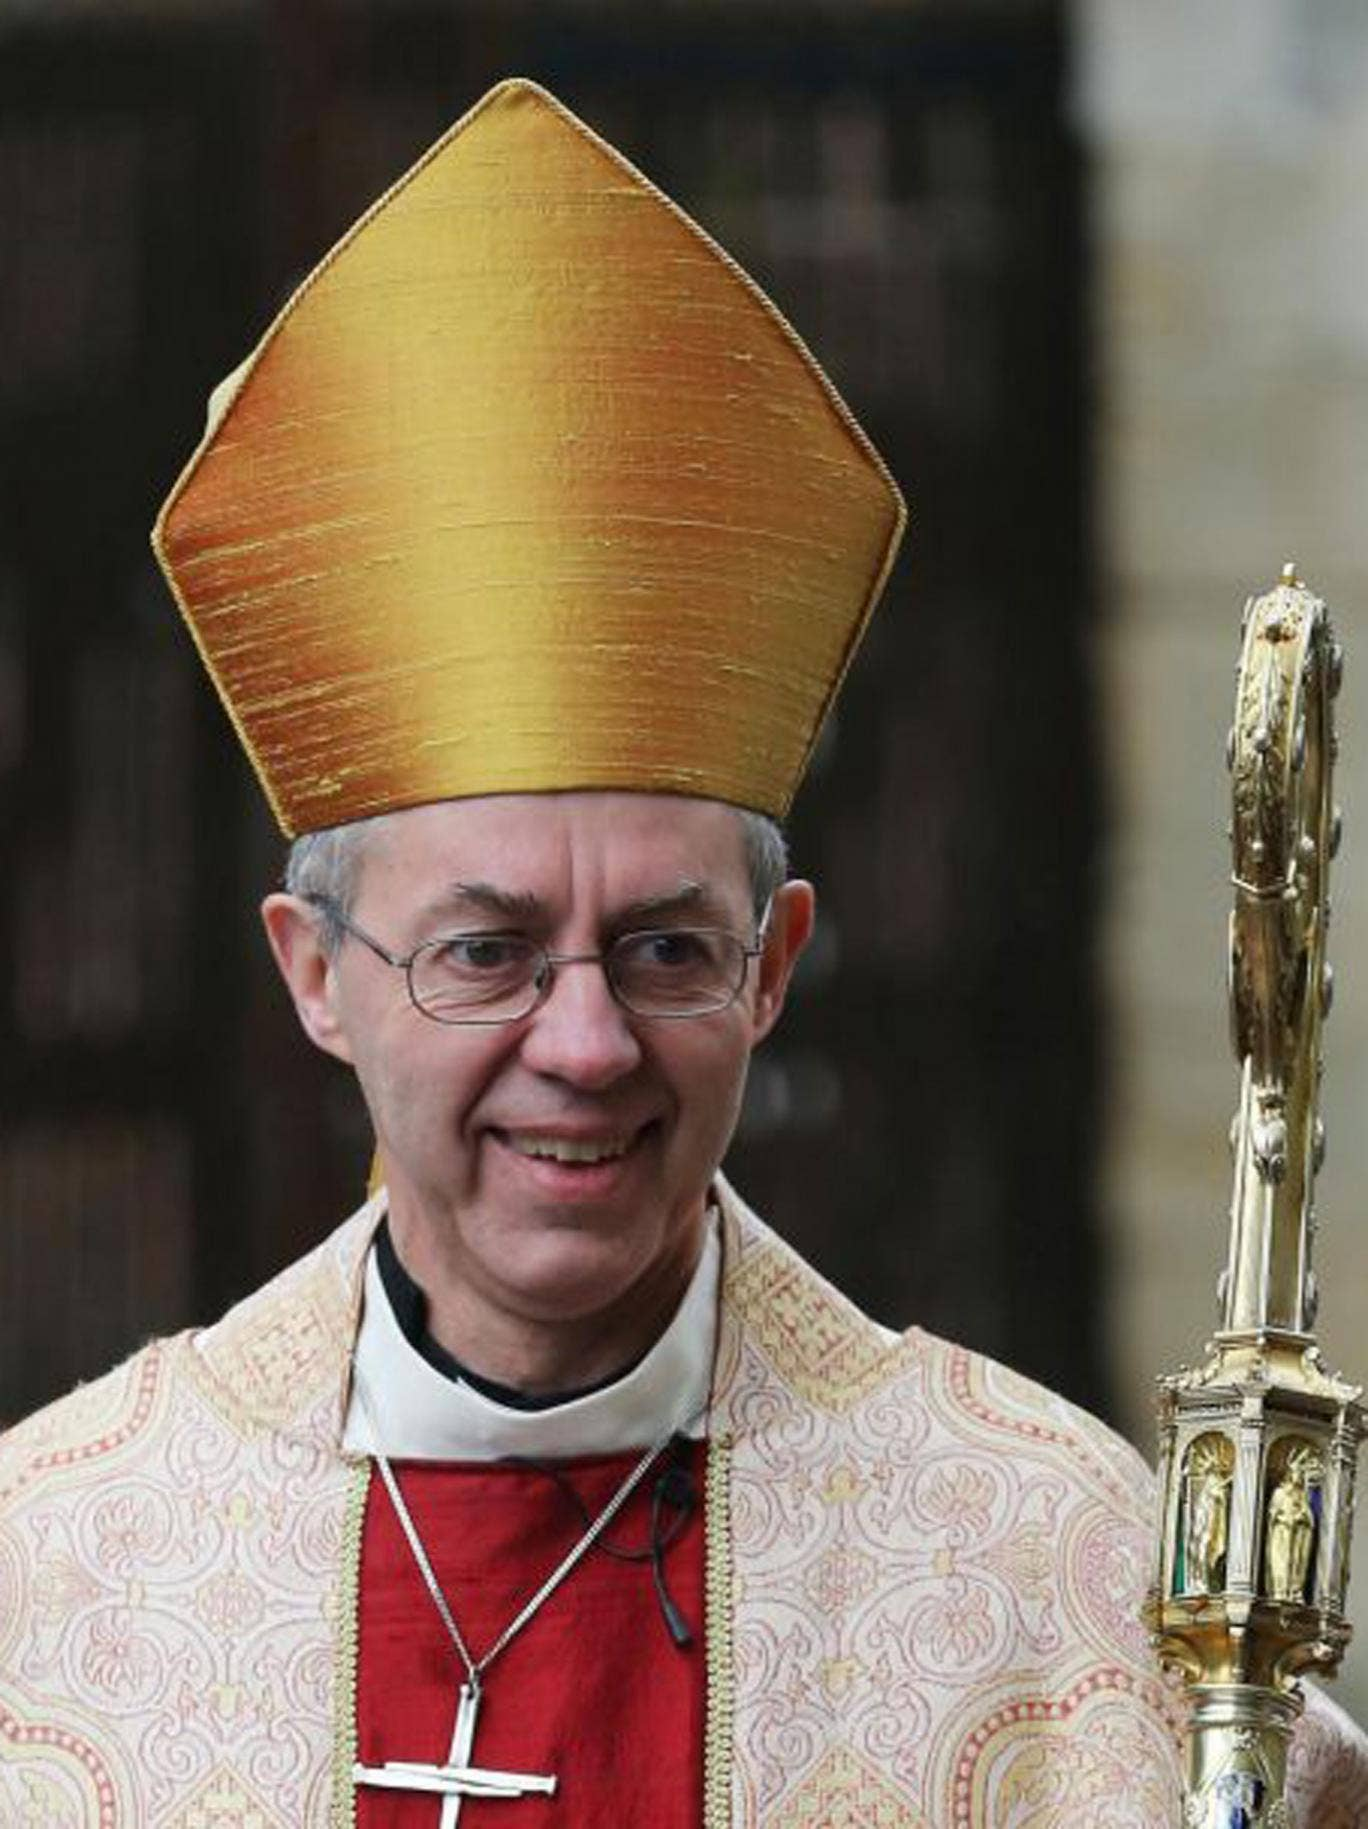 The Archbishop of Canterbury, the Most Reverend Justin Welby, who has delivered a stark warning that Britain is in an economic depression and could take a generation to recover.